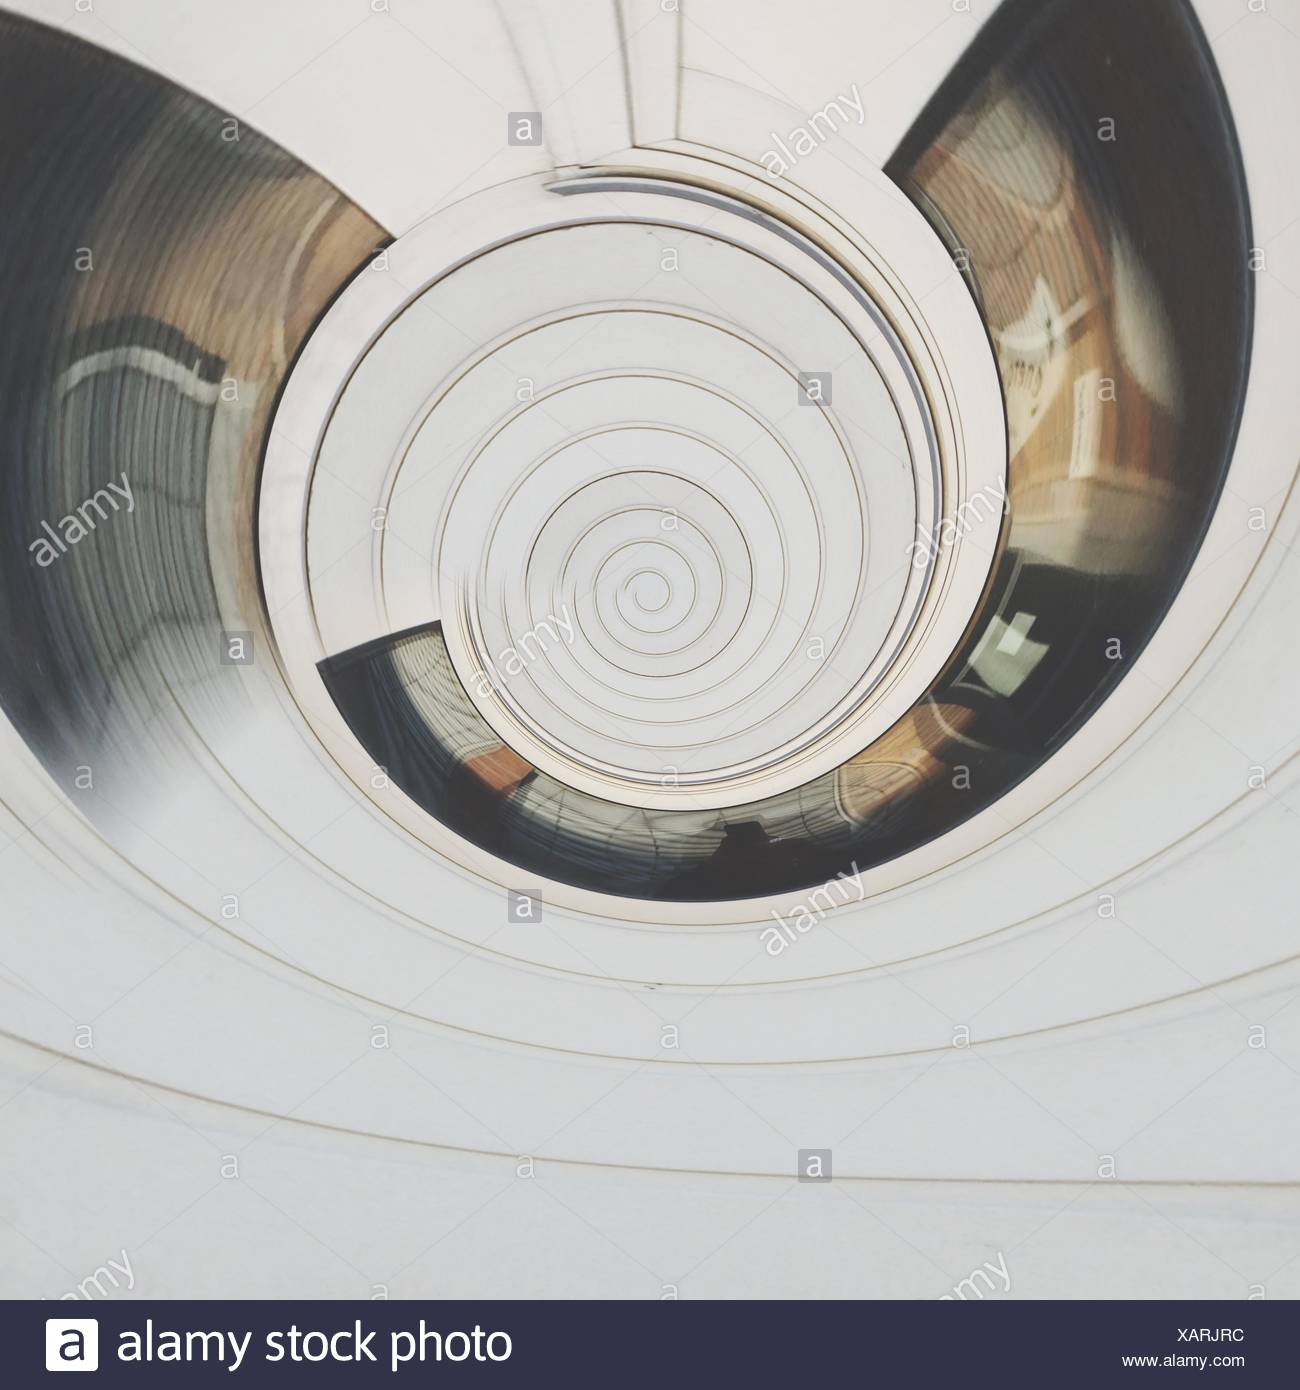 Digital Composite Of Abstract Spiral White Pattern - Stock Image